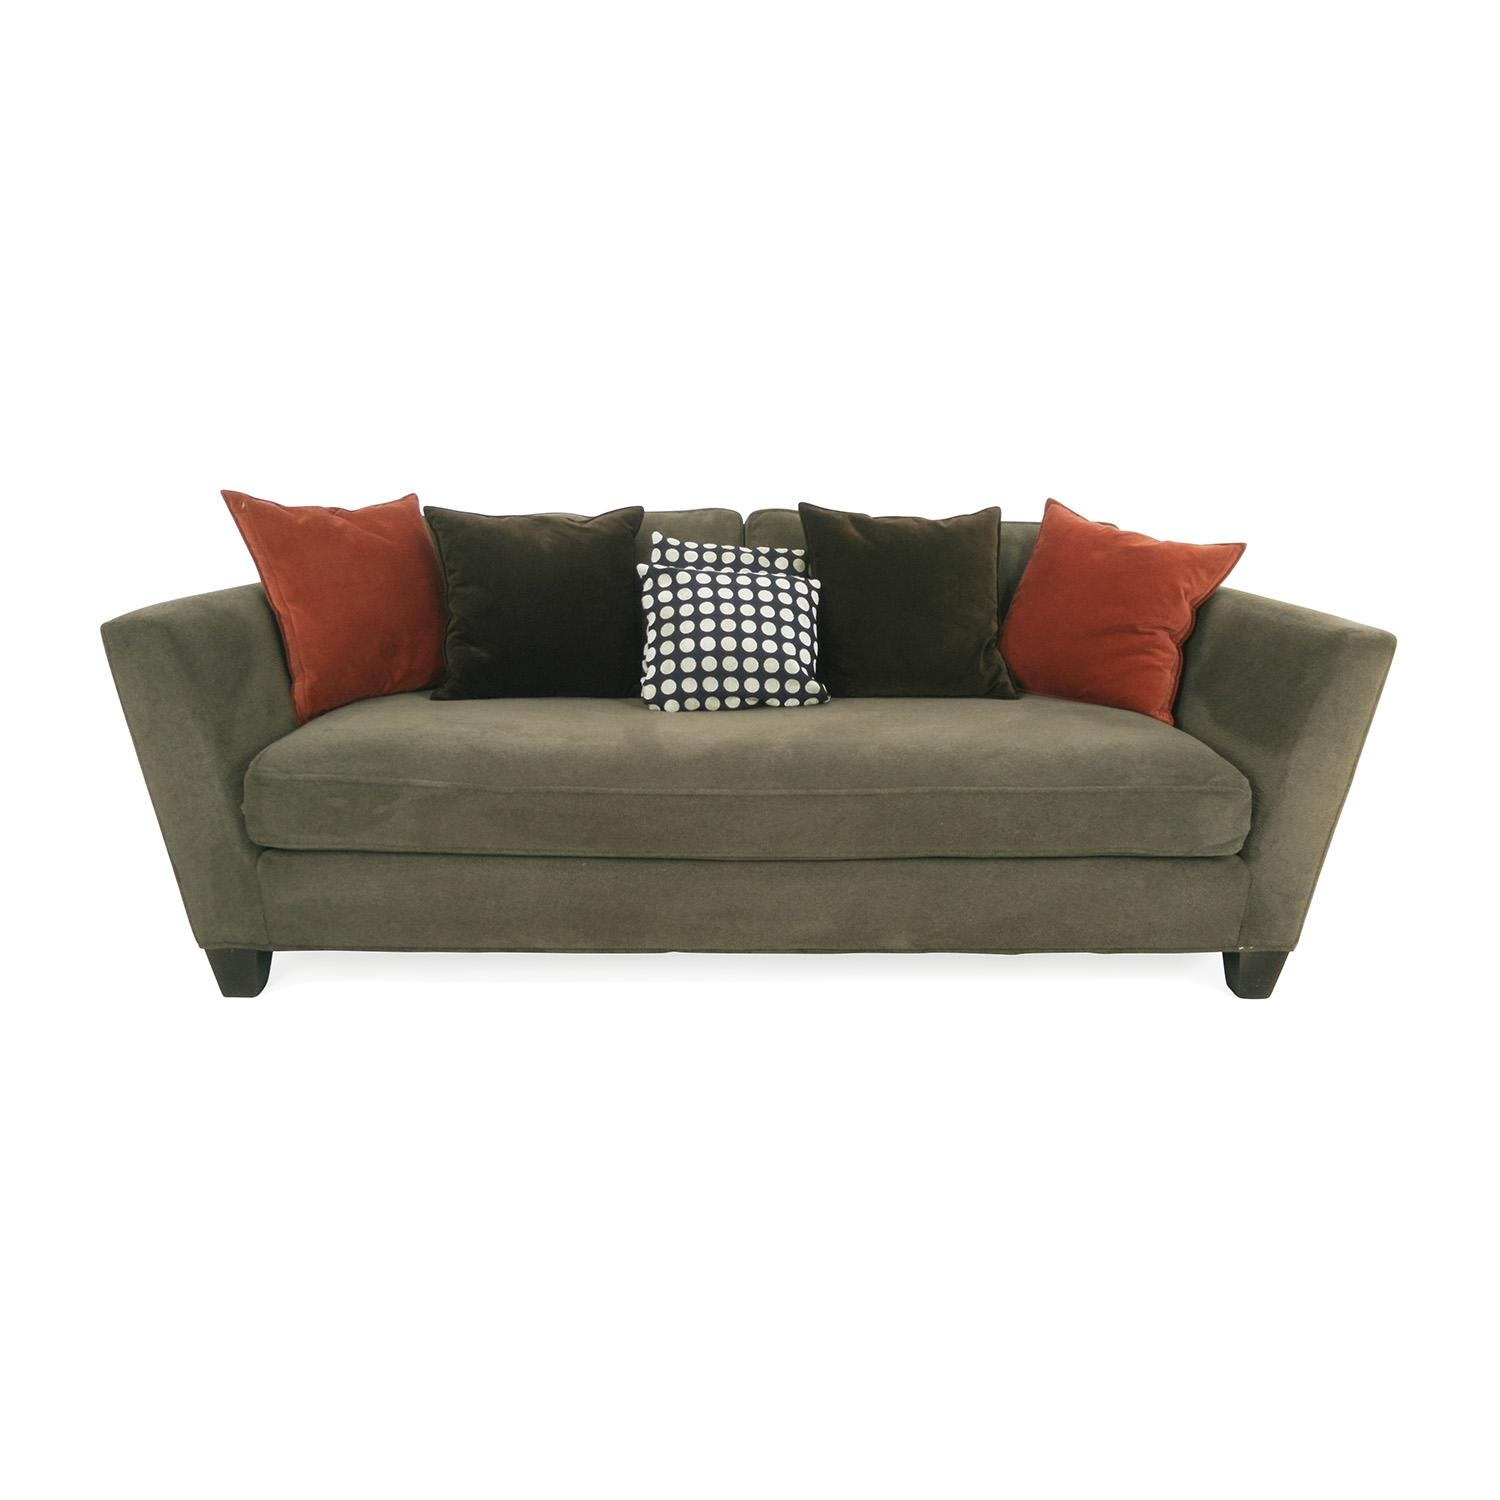 78% Off - Crate And Barrel Crate And Barrel Marlowe Daybed / Sofas for Crate And Barrel Futon Sofas